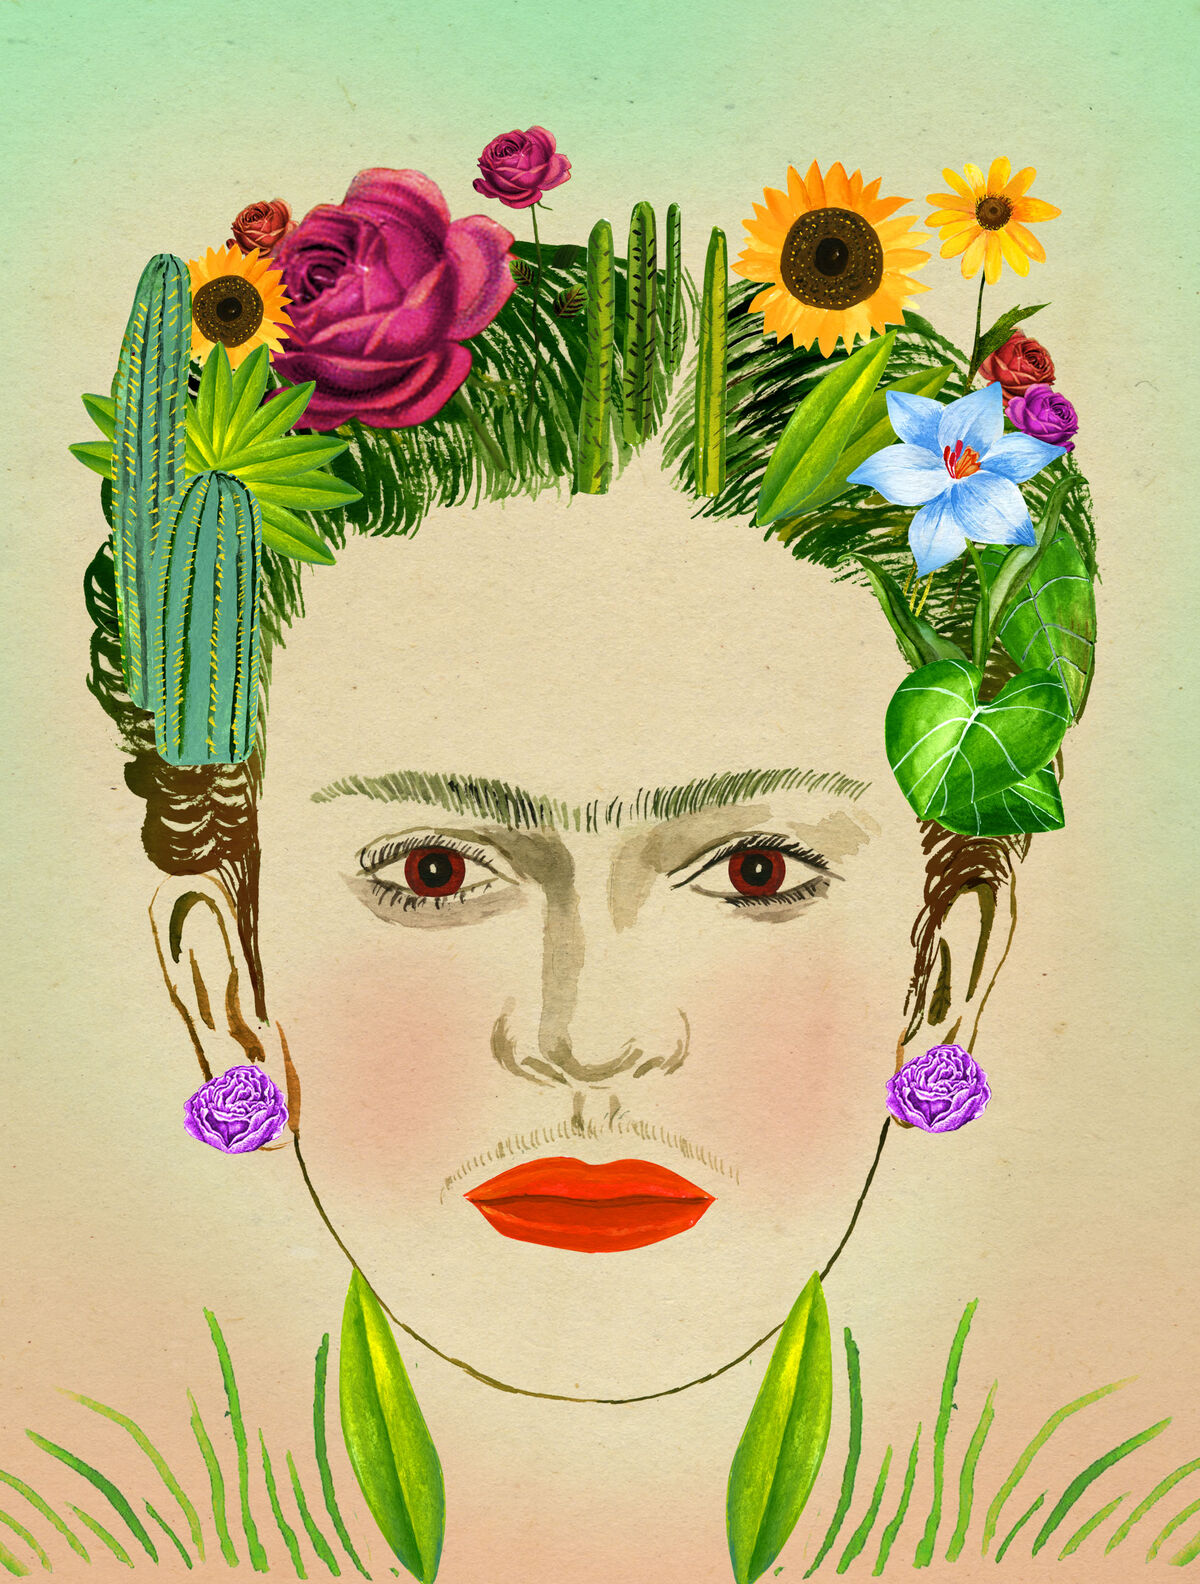 Illustration of Frida Kahlo, excerpted from Ellen Weinstein's Recipes for Good Luck, 2018. Published by Chronicle Books.